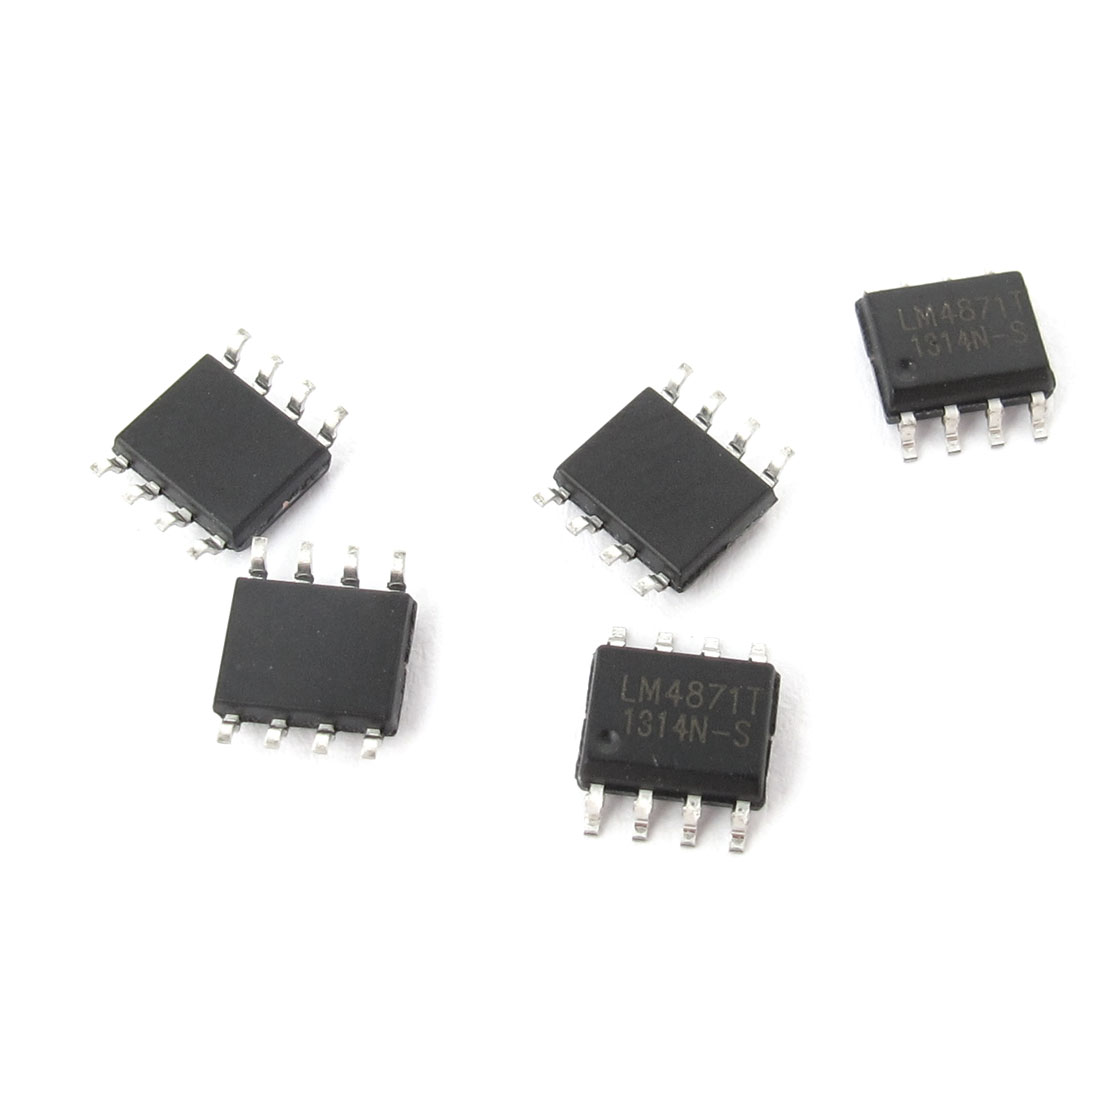 5 Pcs LM4871 SOP-8 8Pin Audio Power Amplifier IC Chip 1.1W 1.1 Watt